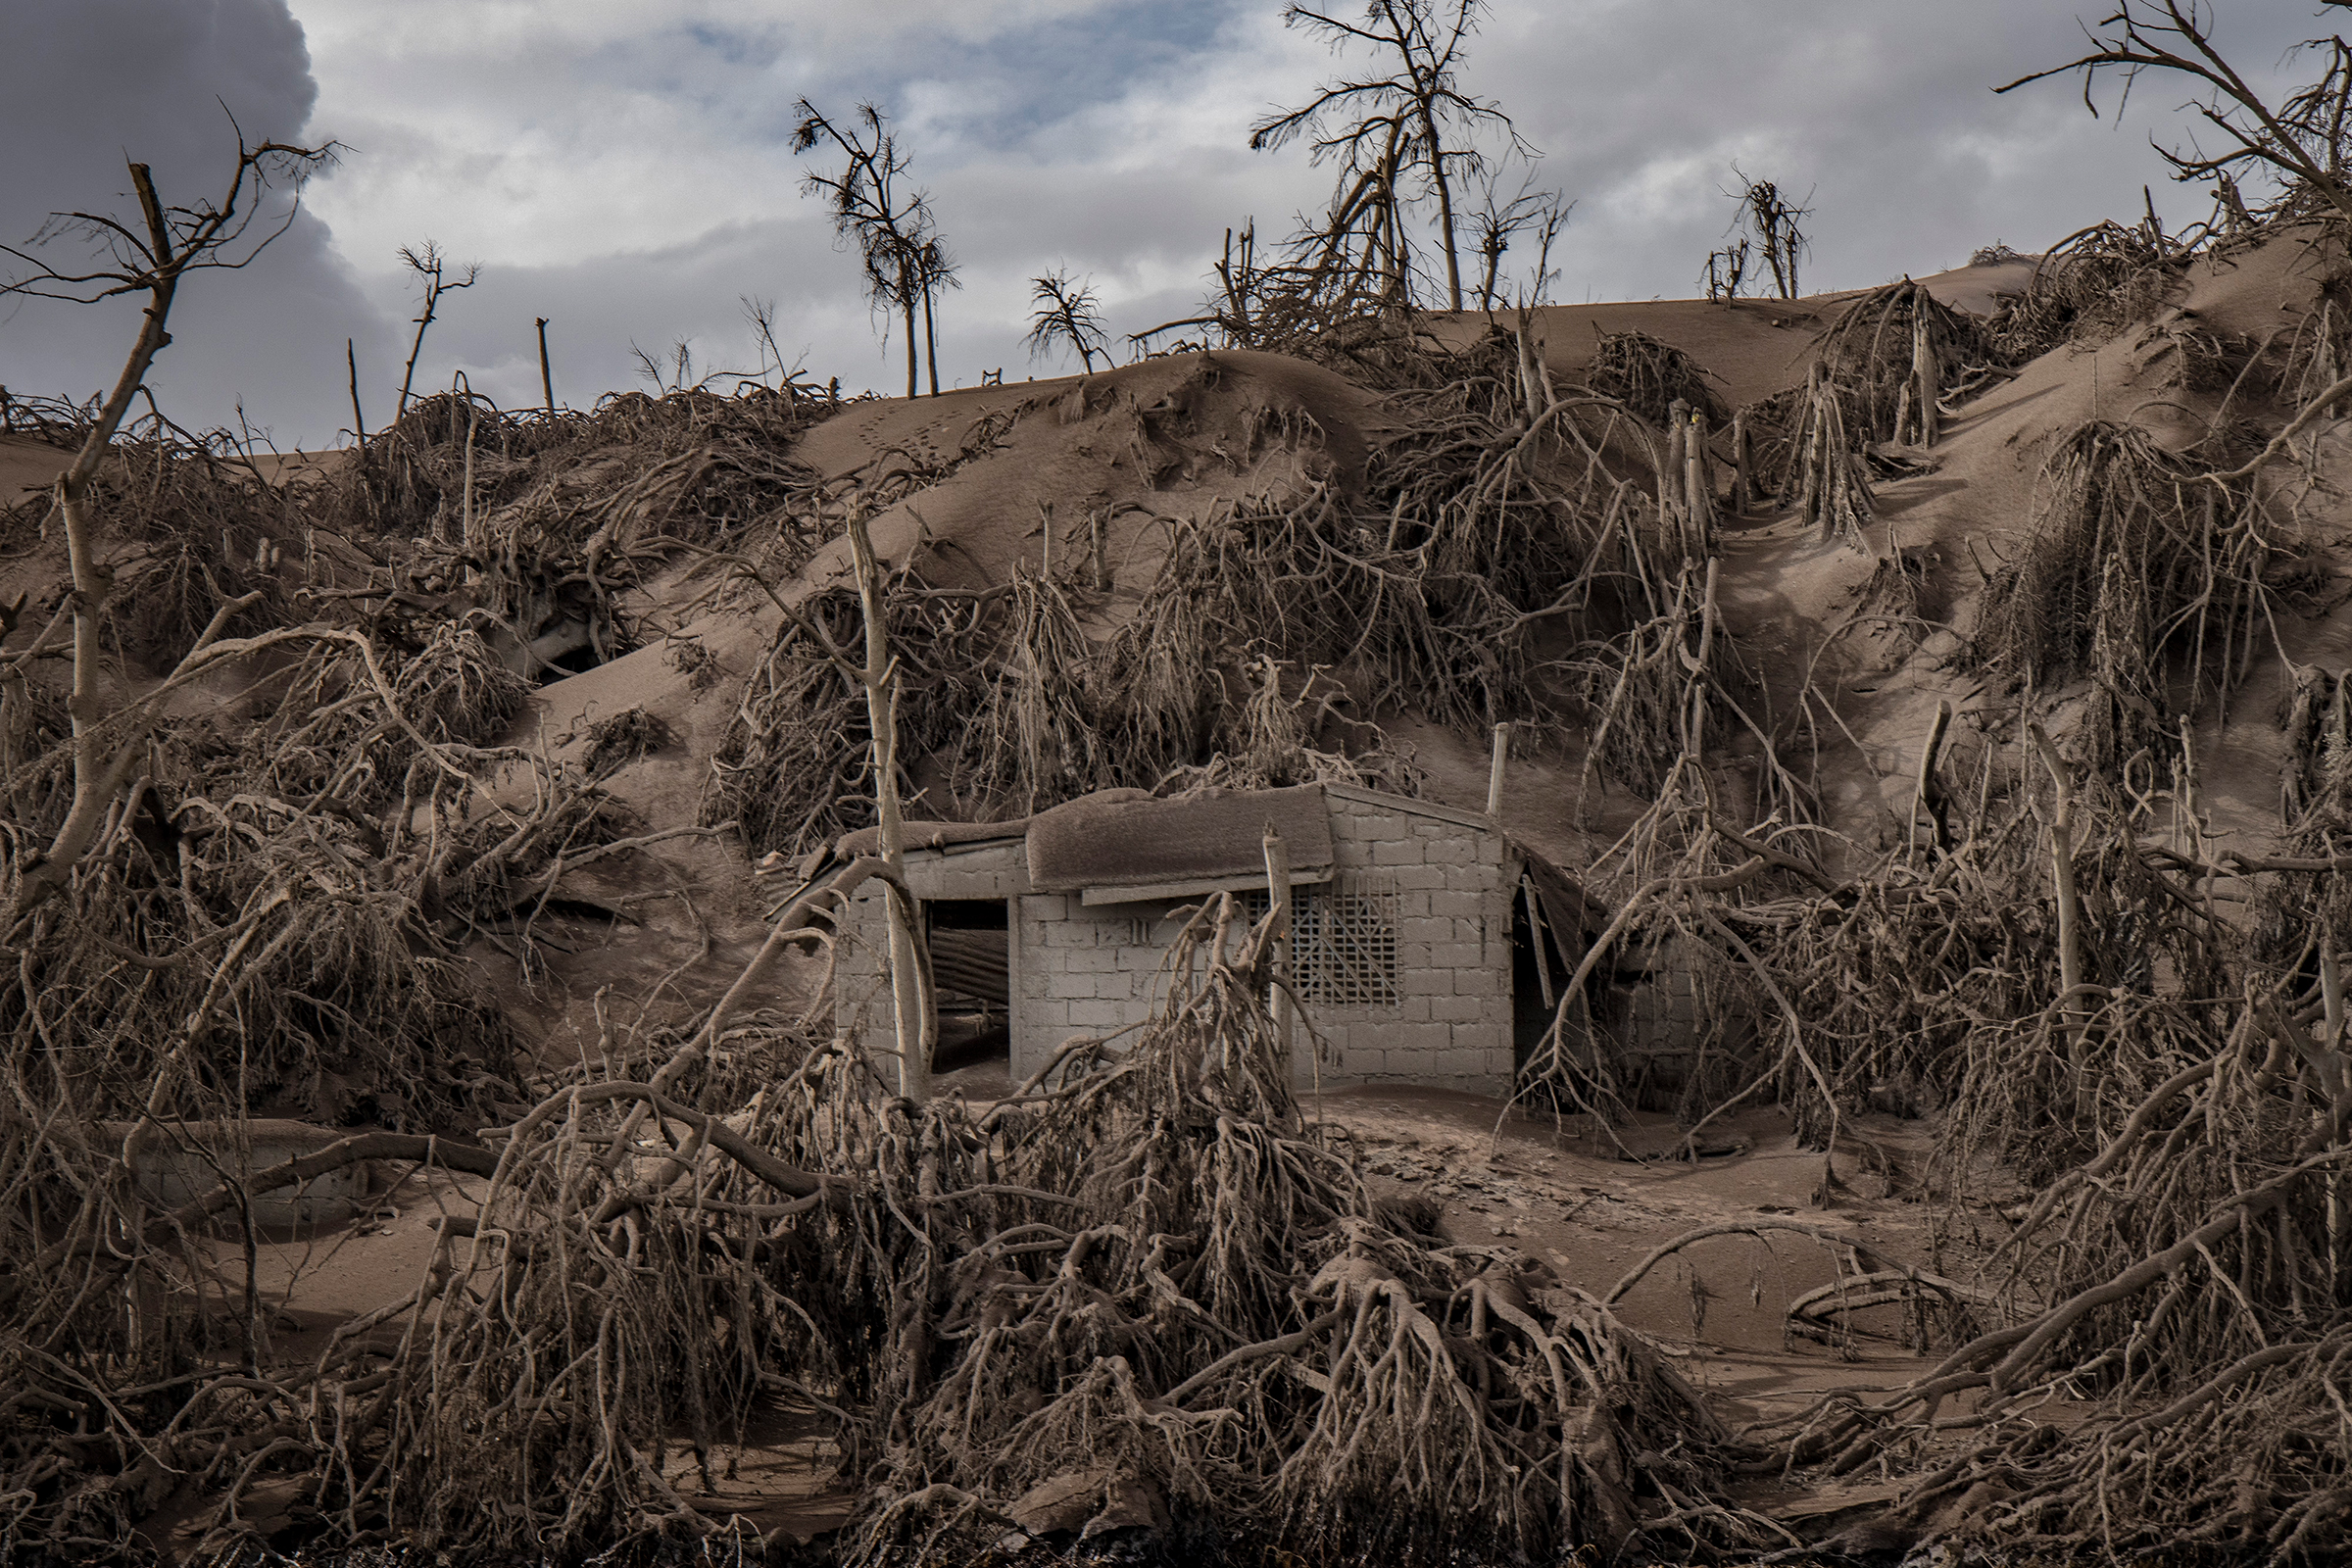 A house near the crater is buried in ash.